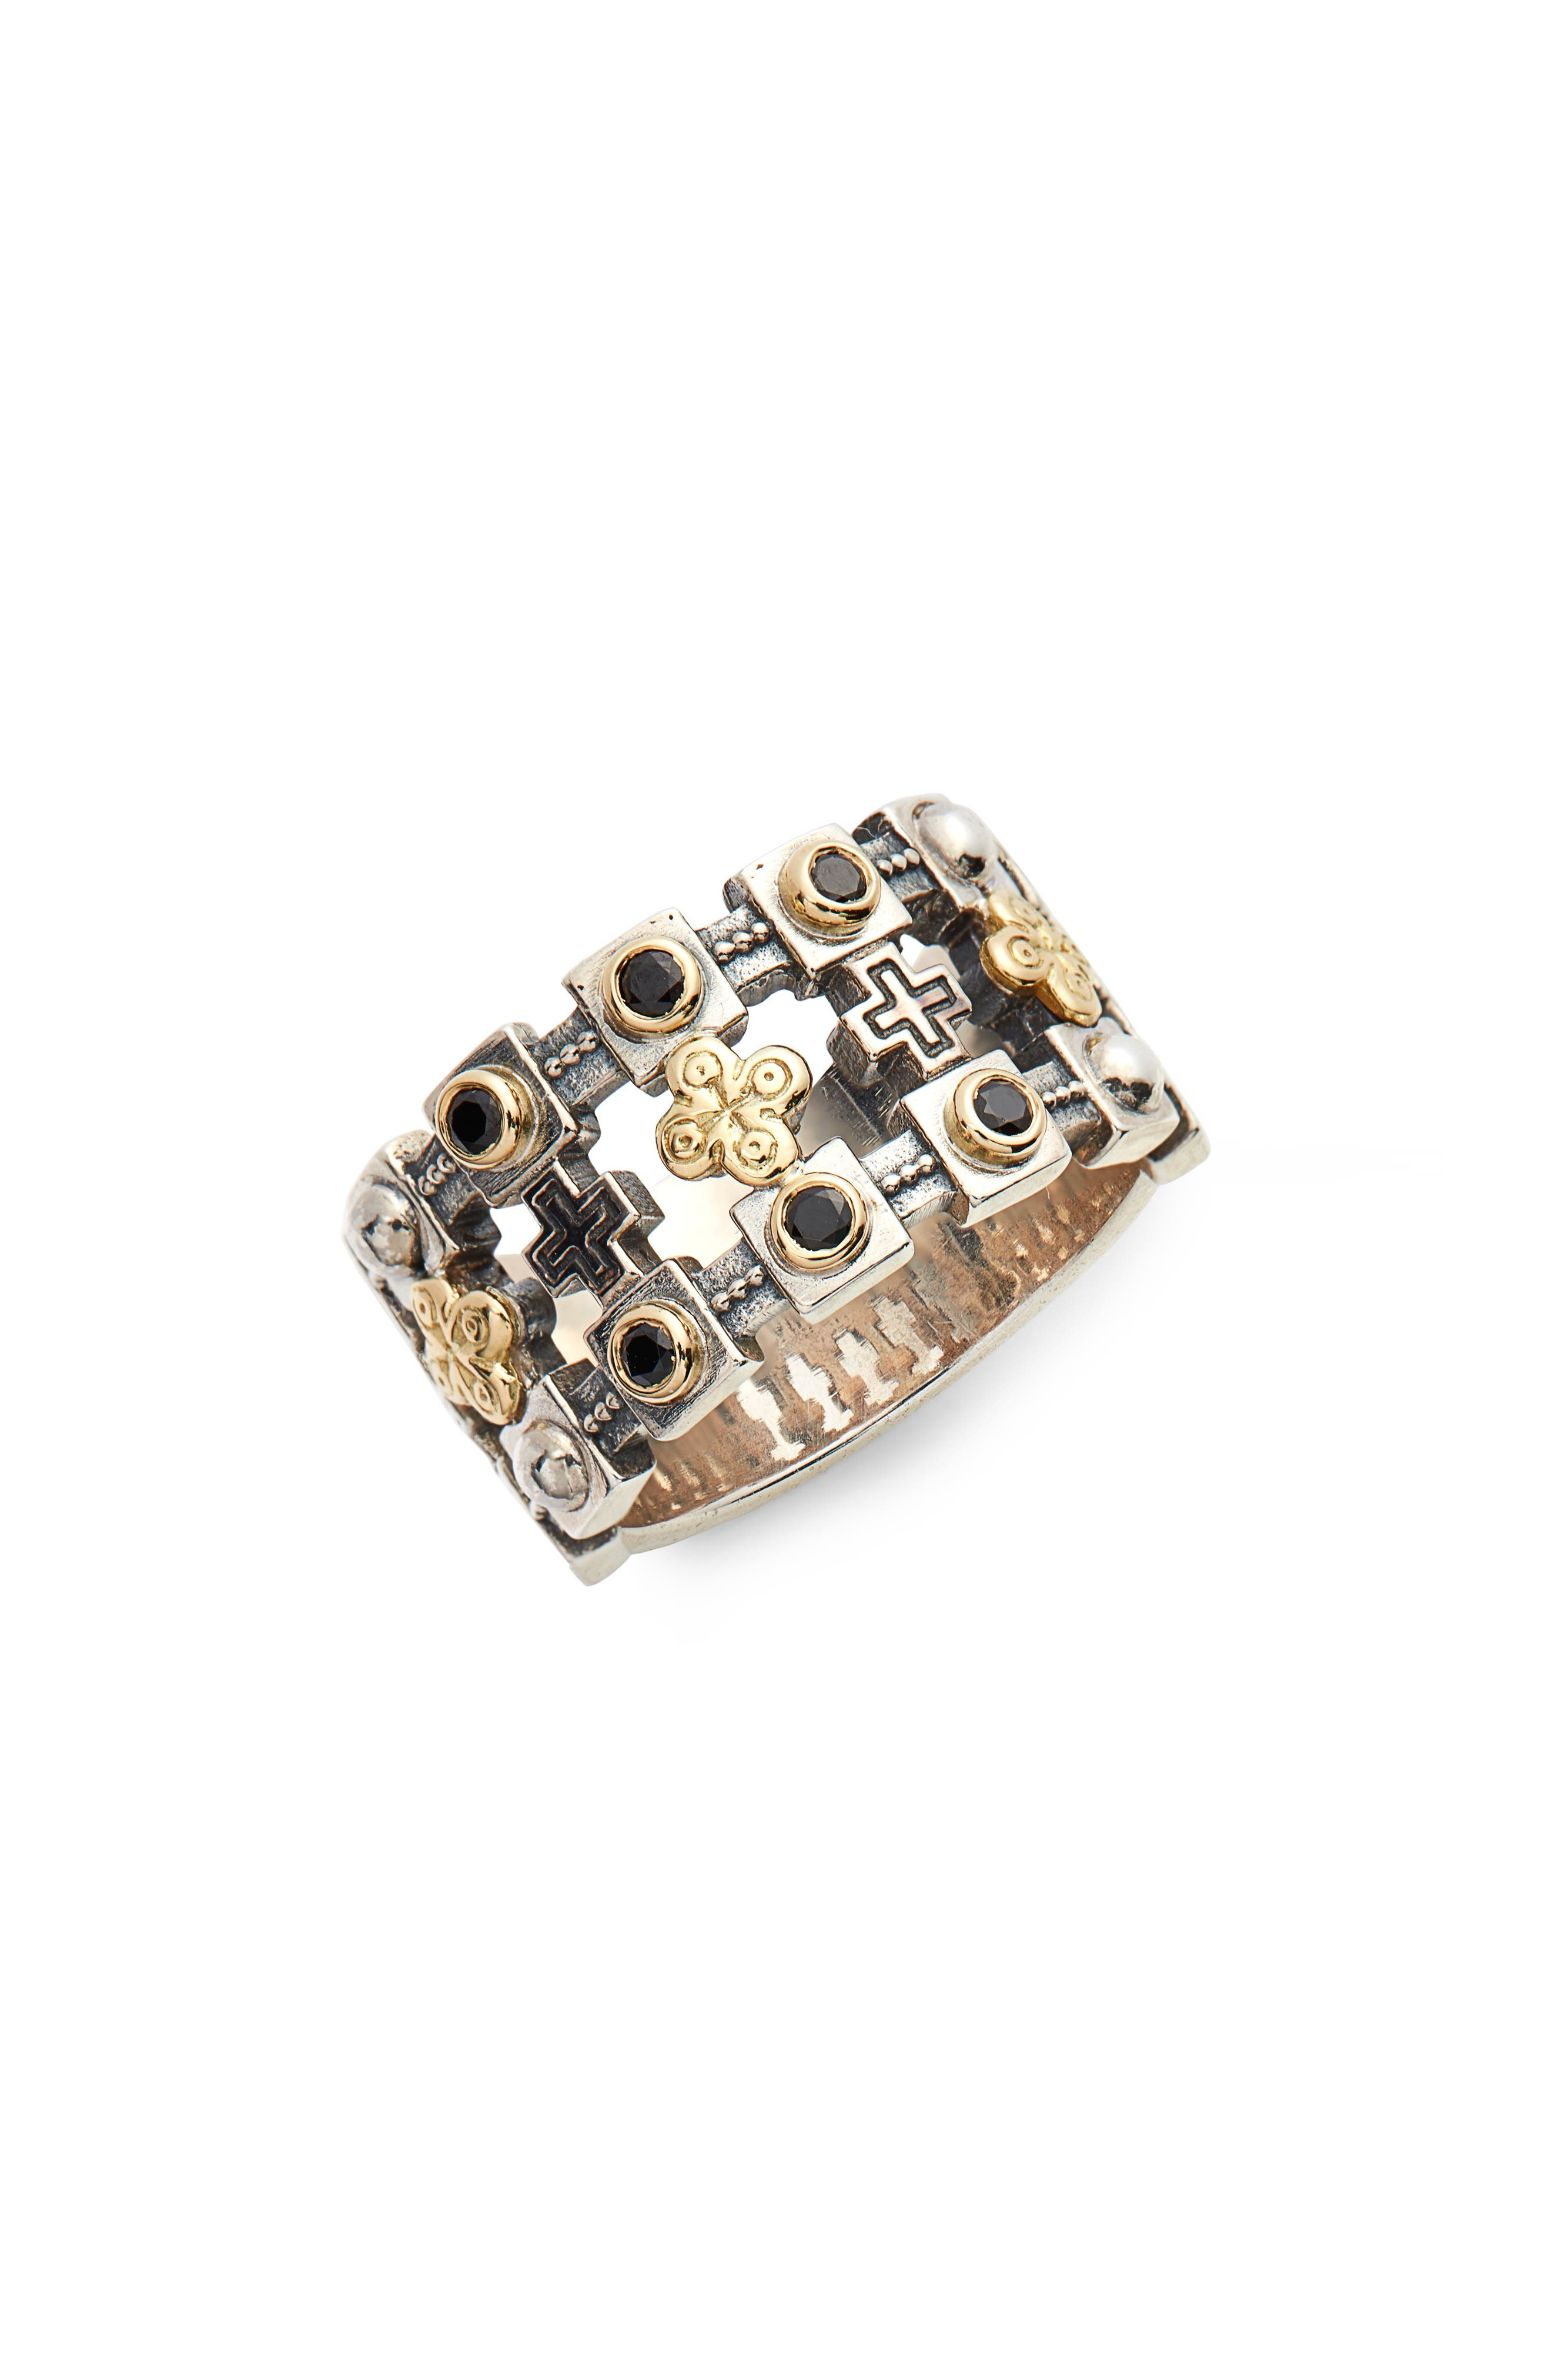 Stavros Openwork Wide Ring,                             Main thumbnail 1, color,                             Silver/ Gold/ Spinel